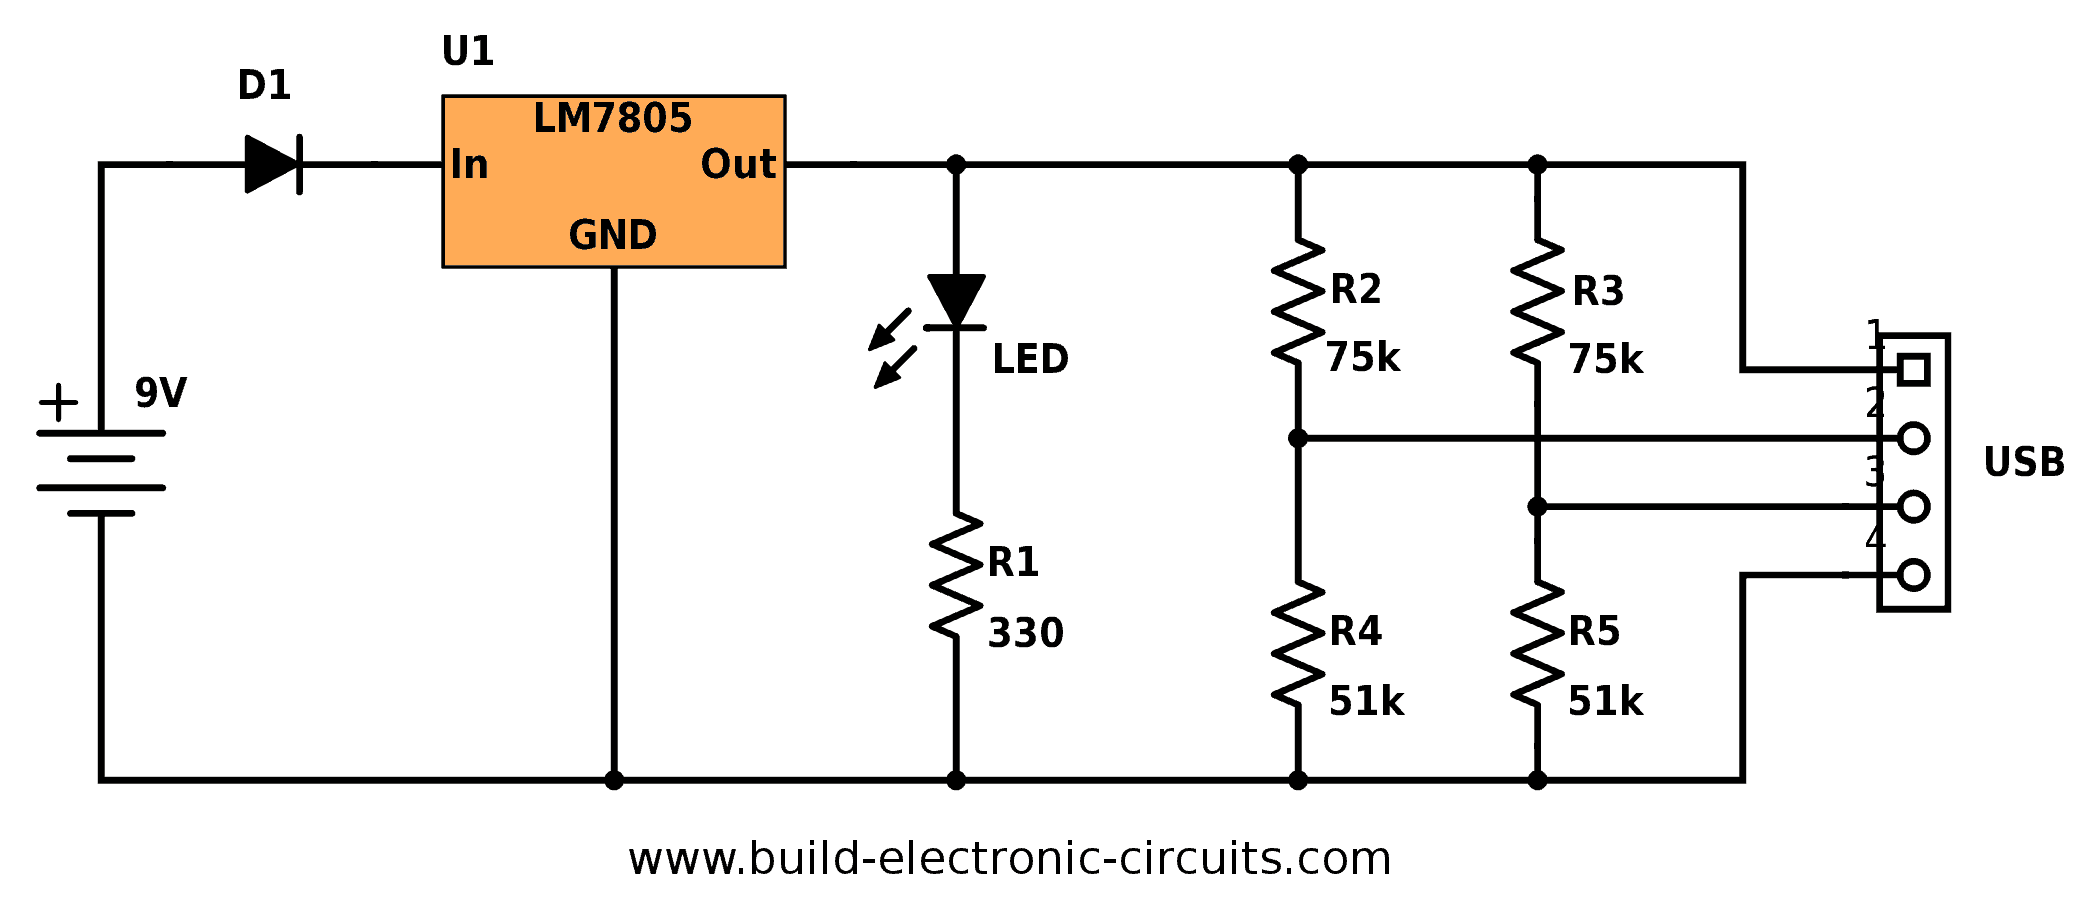 Portable USB Charger circuit diagram values portable usb charger circuit build electronic circuits cell phone charger wiring diagram at alyssarenee.co